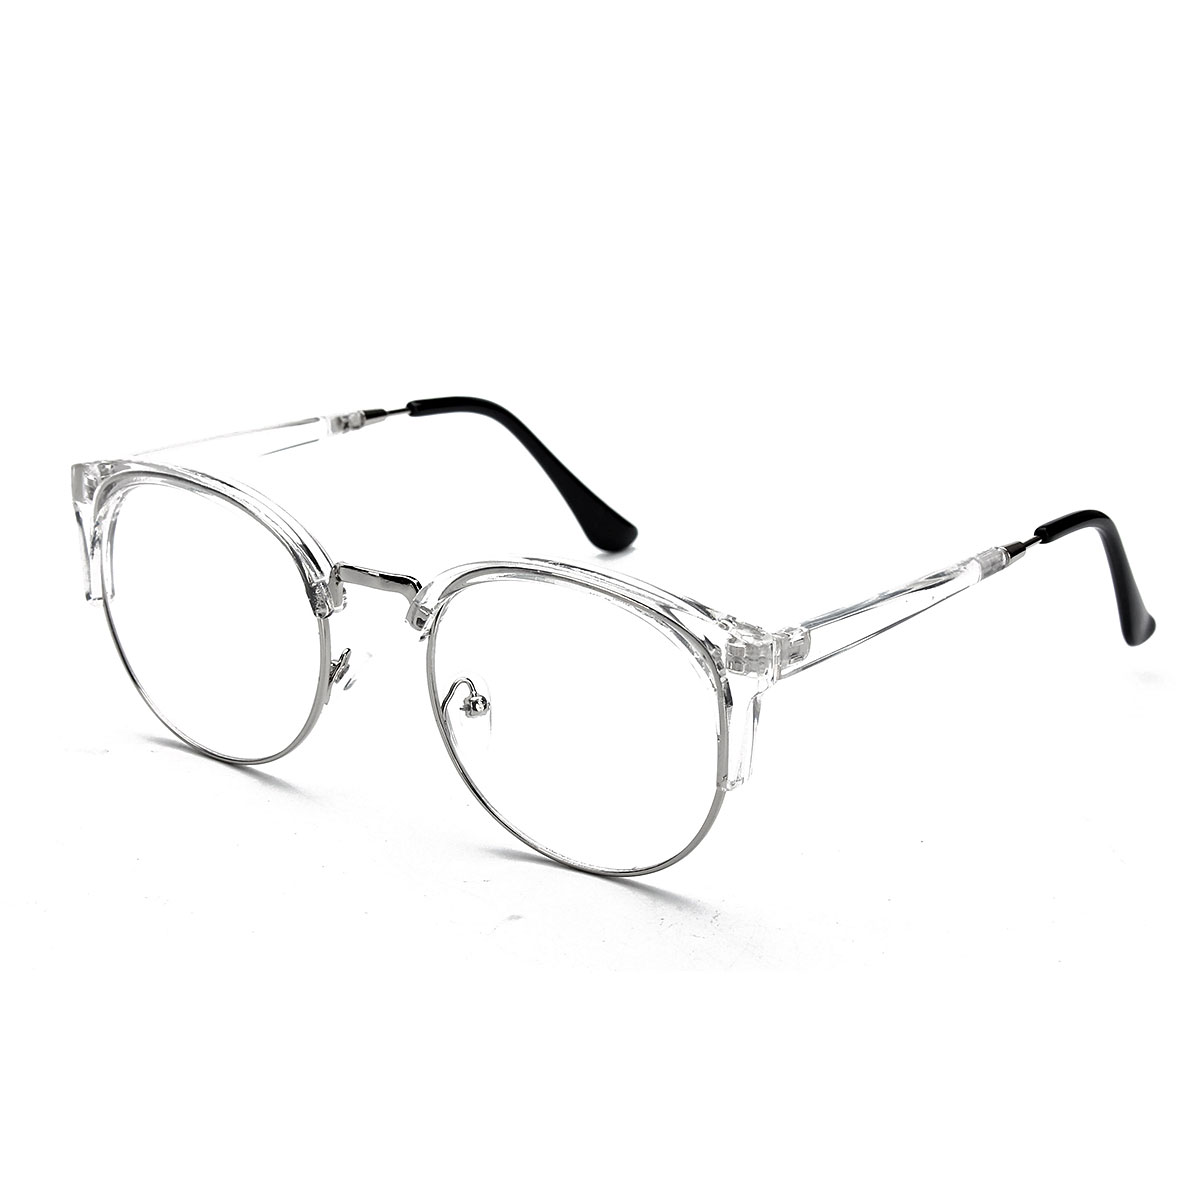 Women Vintage Nerd Glasses Clear Lens Eyewear Men Retro Round Metal Frame Glasses